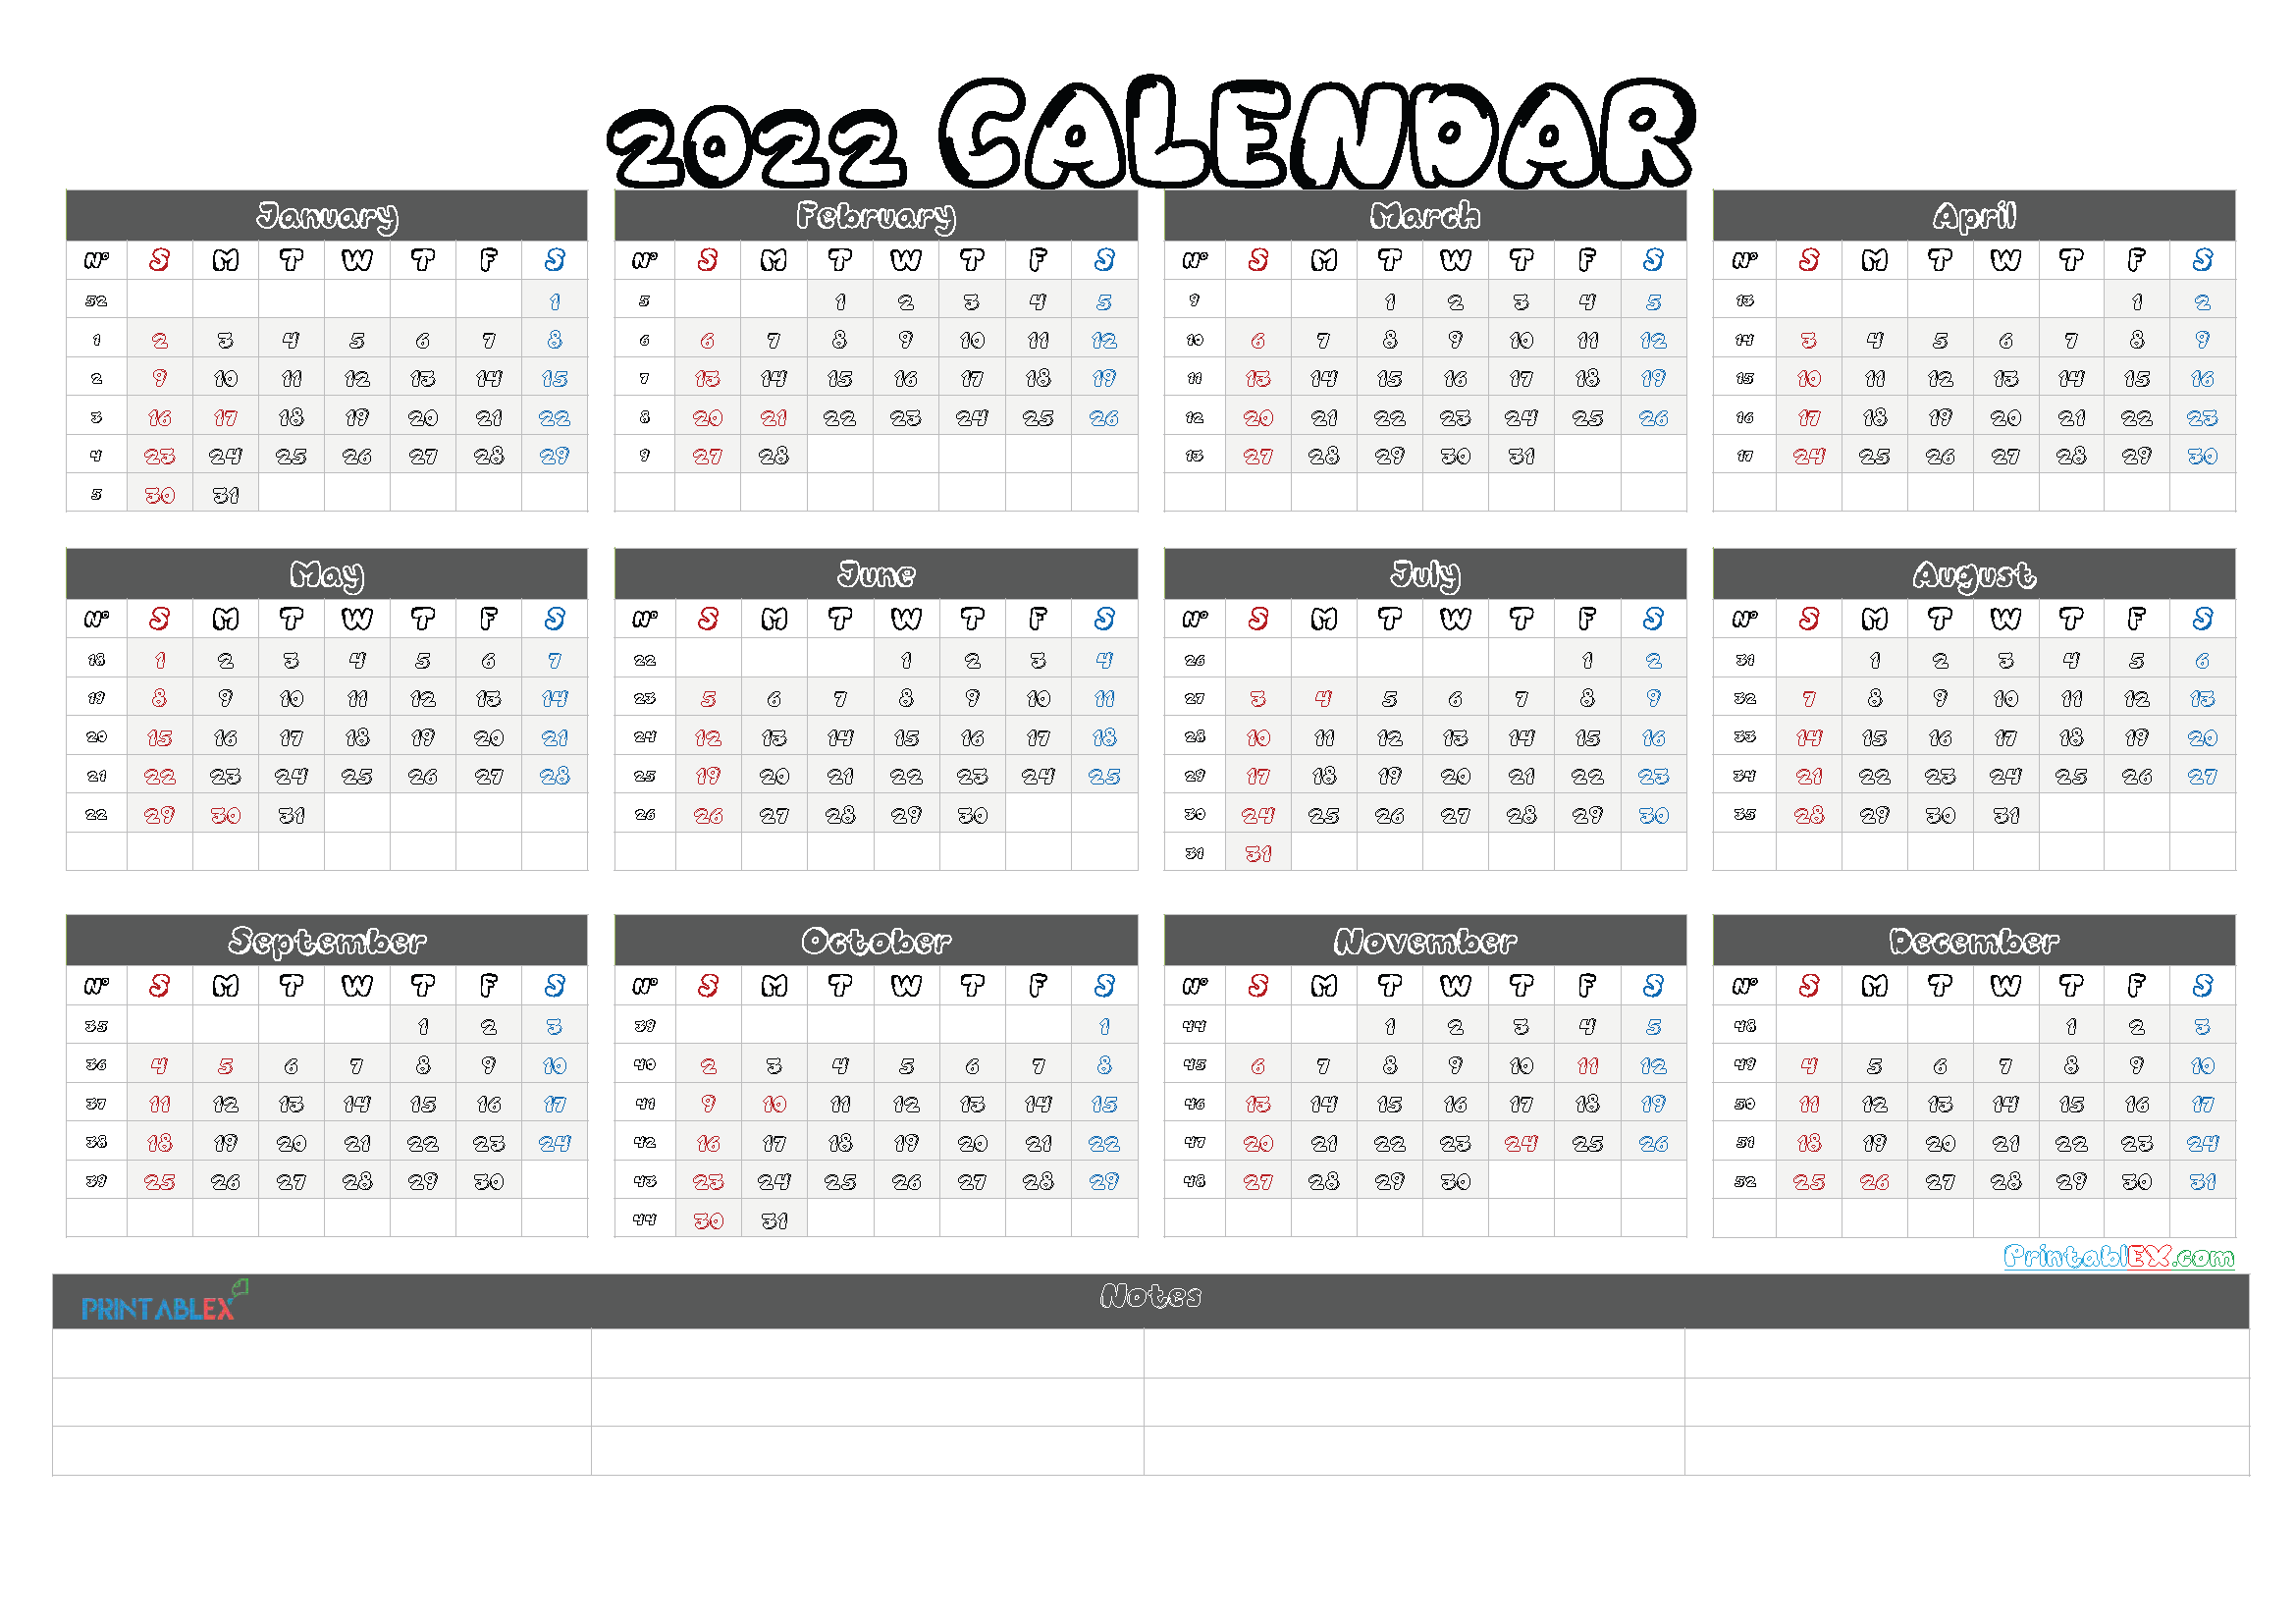 Printable 2022 Calendar by Month (Font: hvdco)